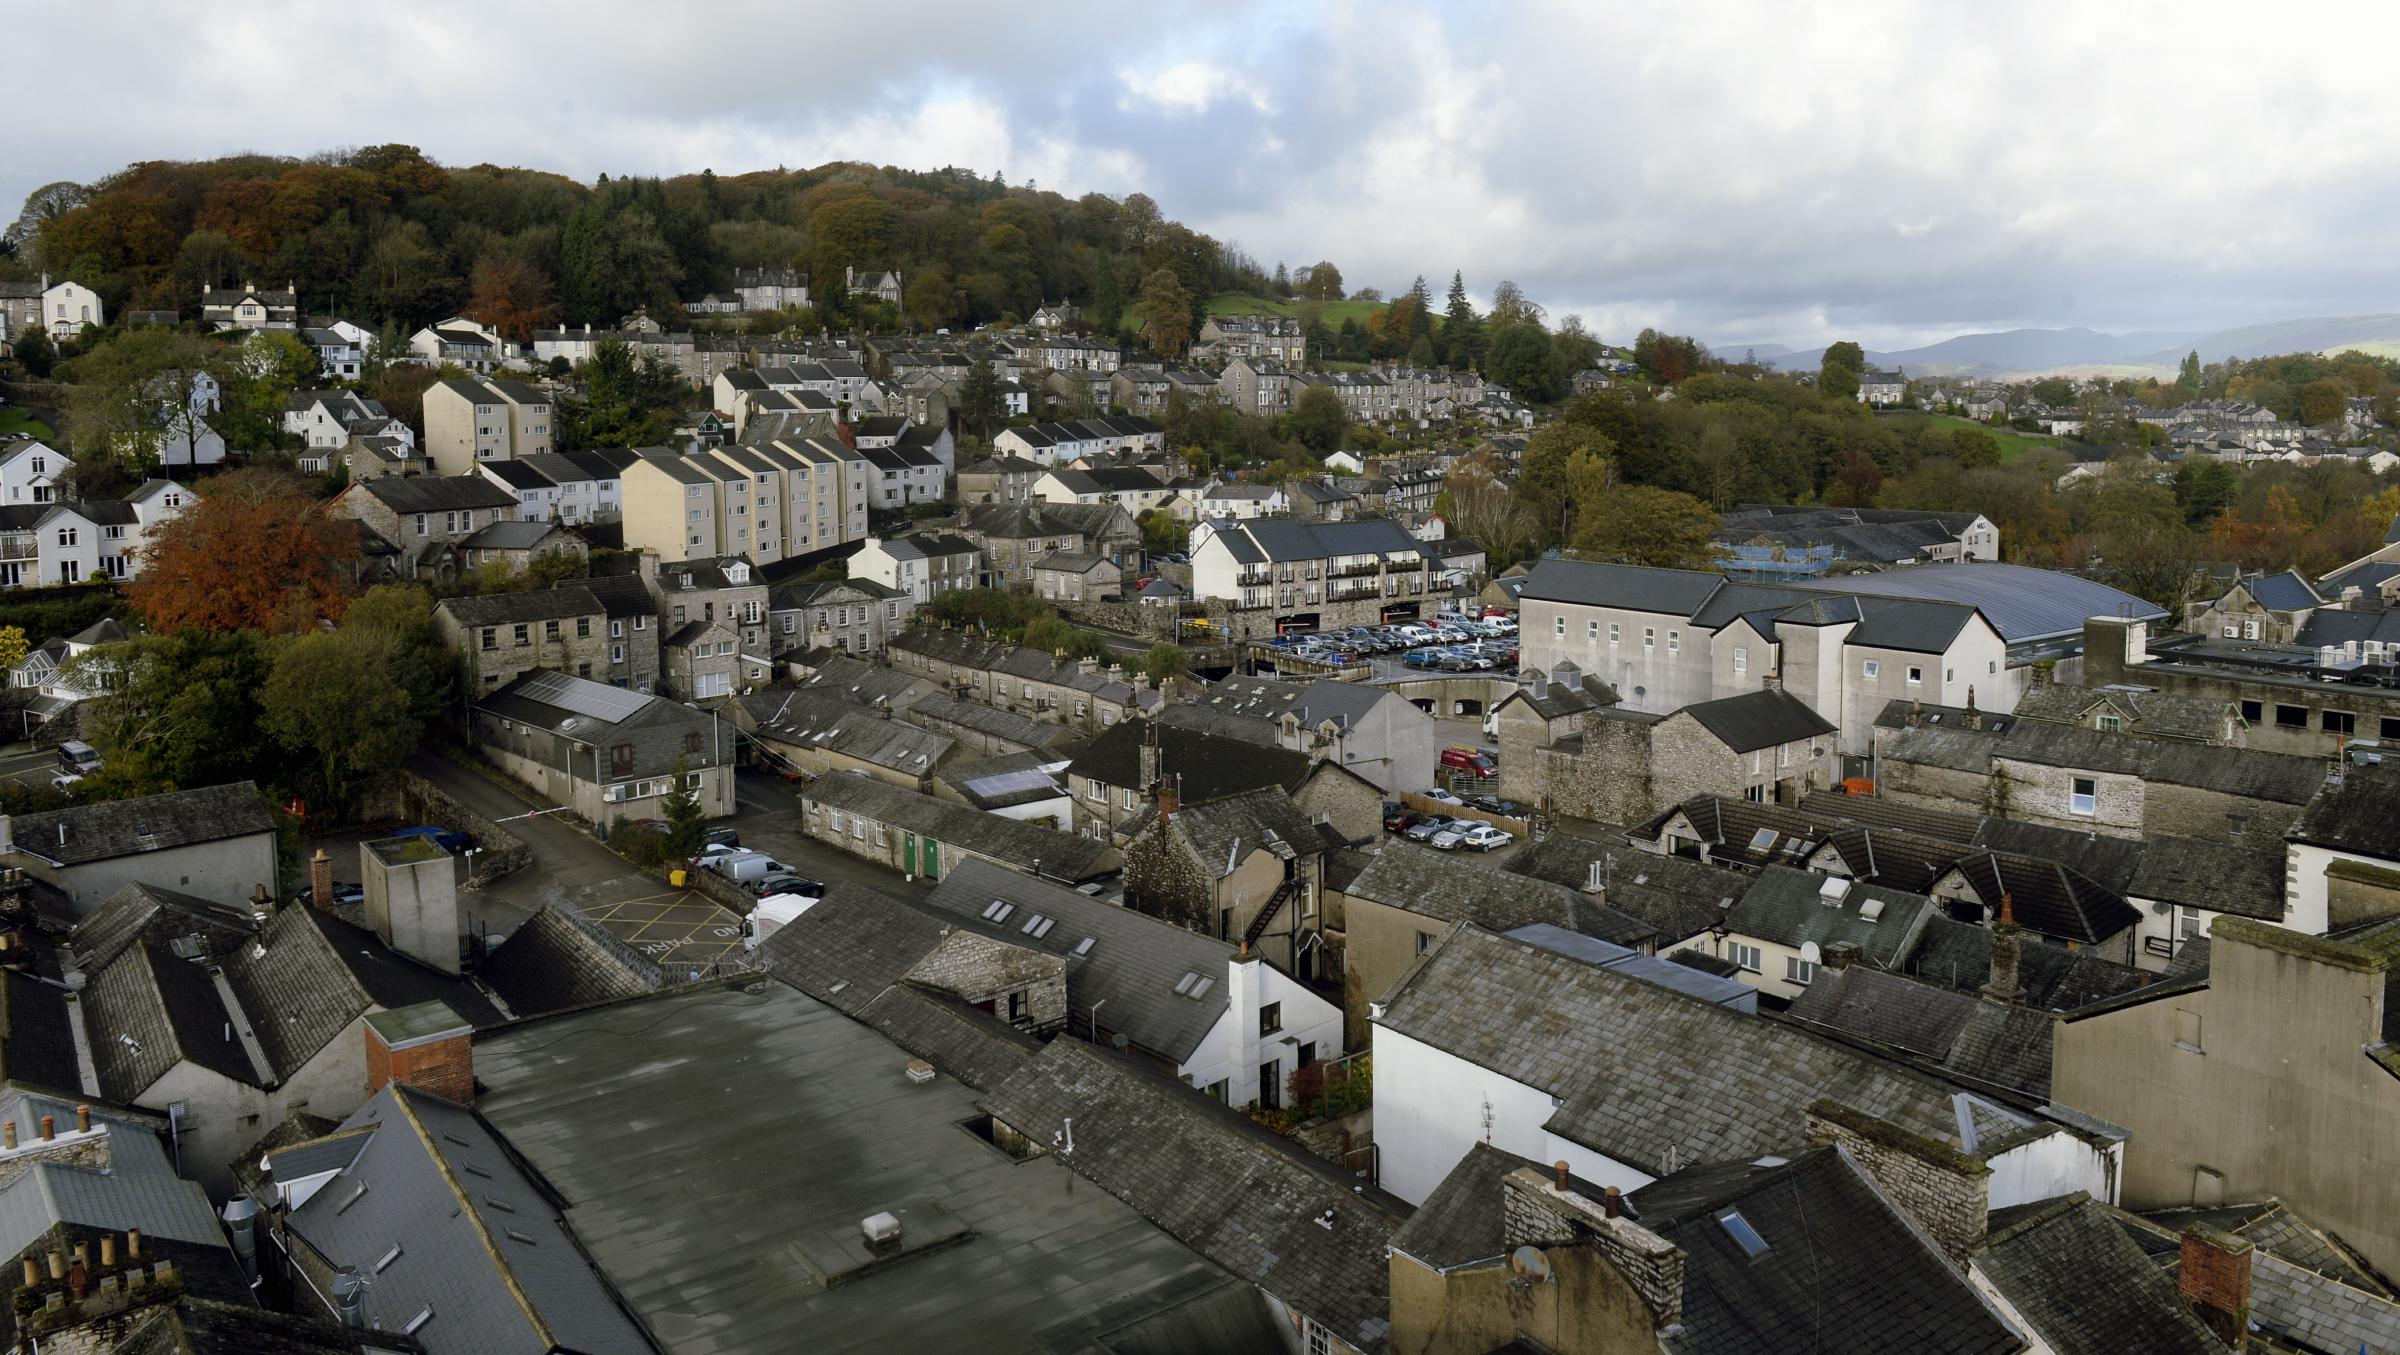 Cumbria is being short-changed when it comes to spending on publi health, a meeting is told, Pictured is Kendal in South Lakeland